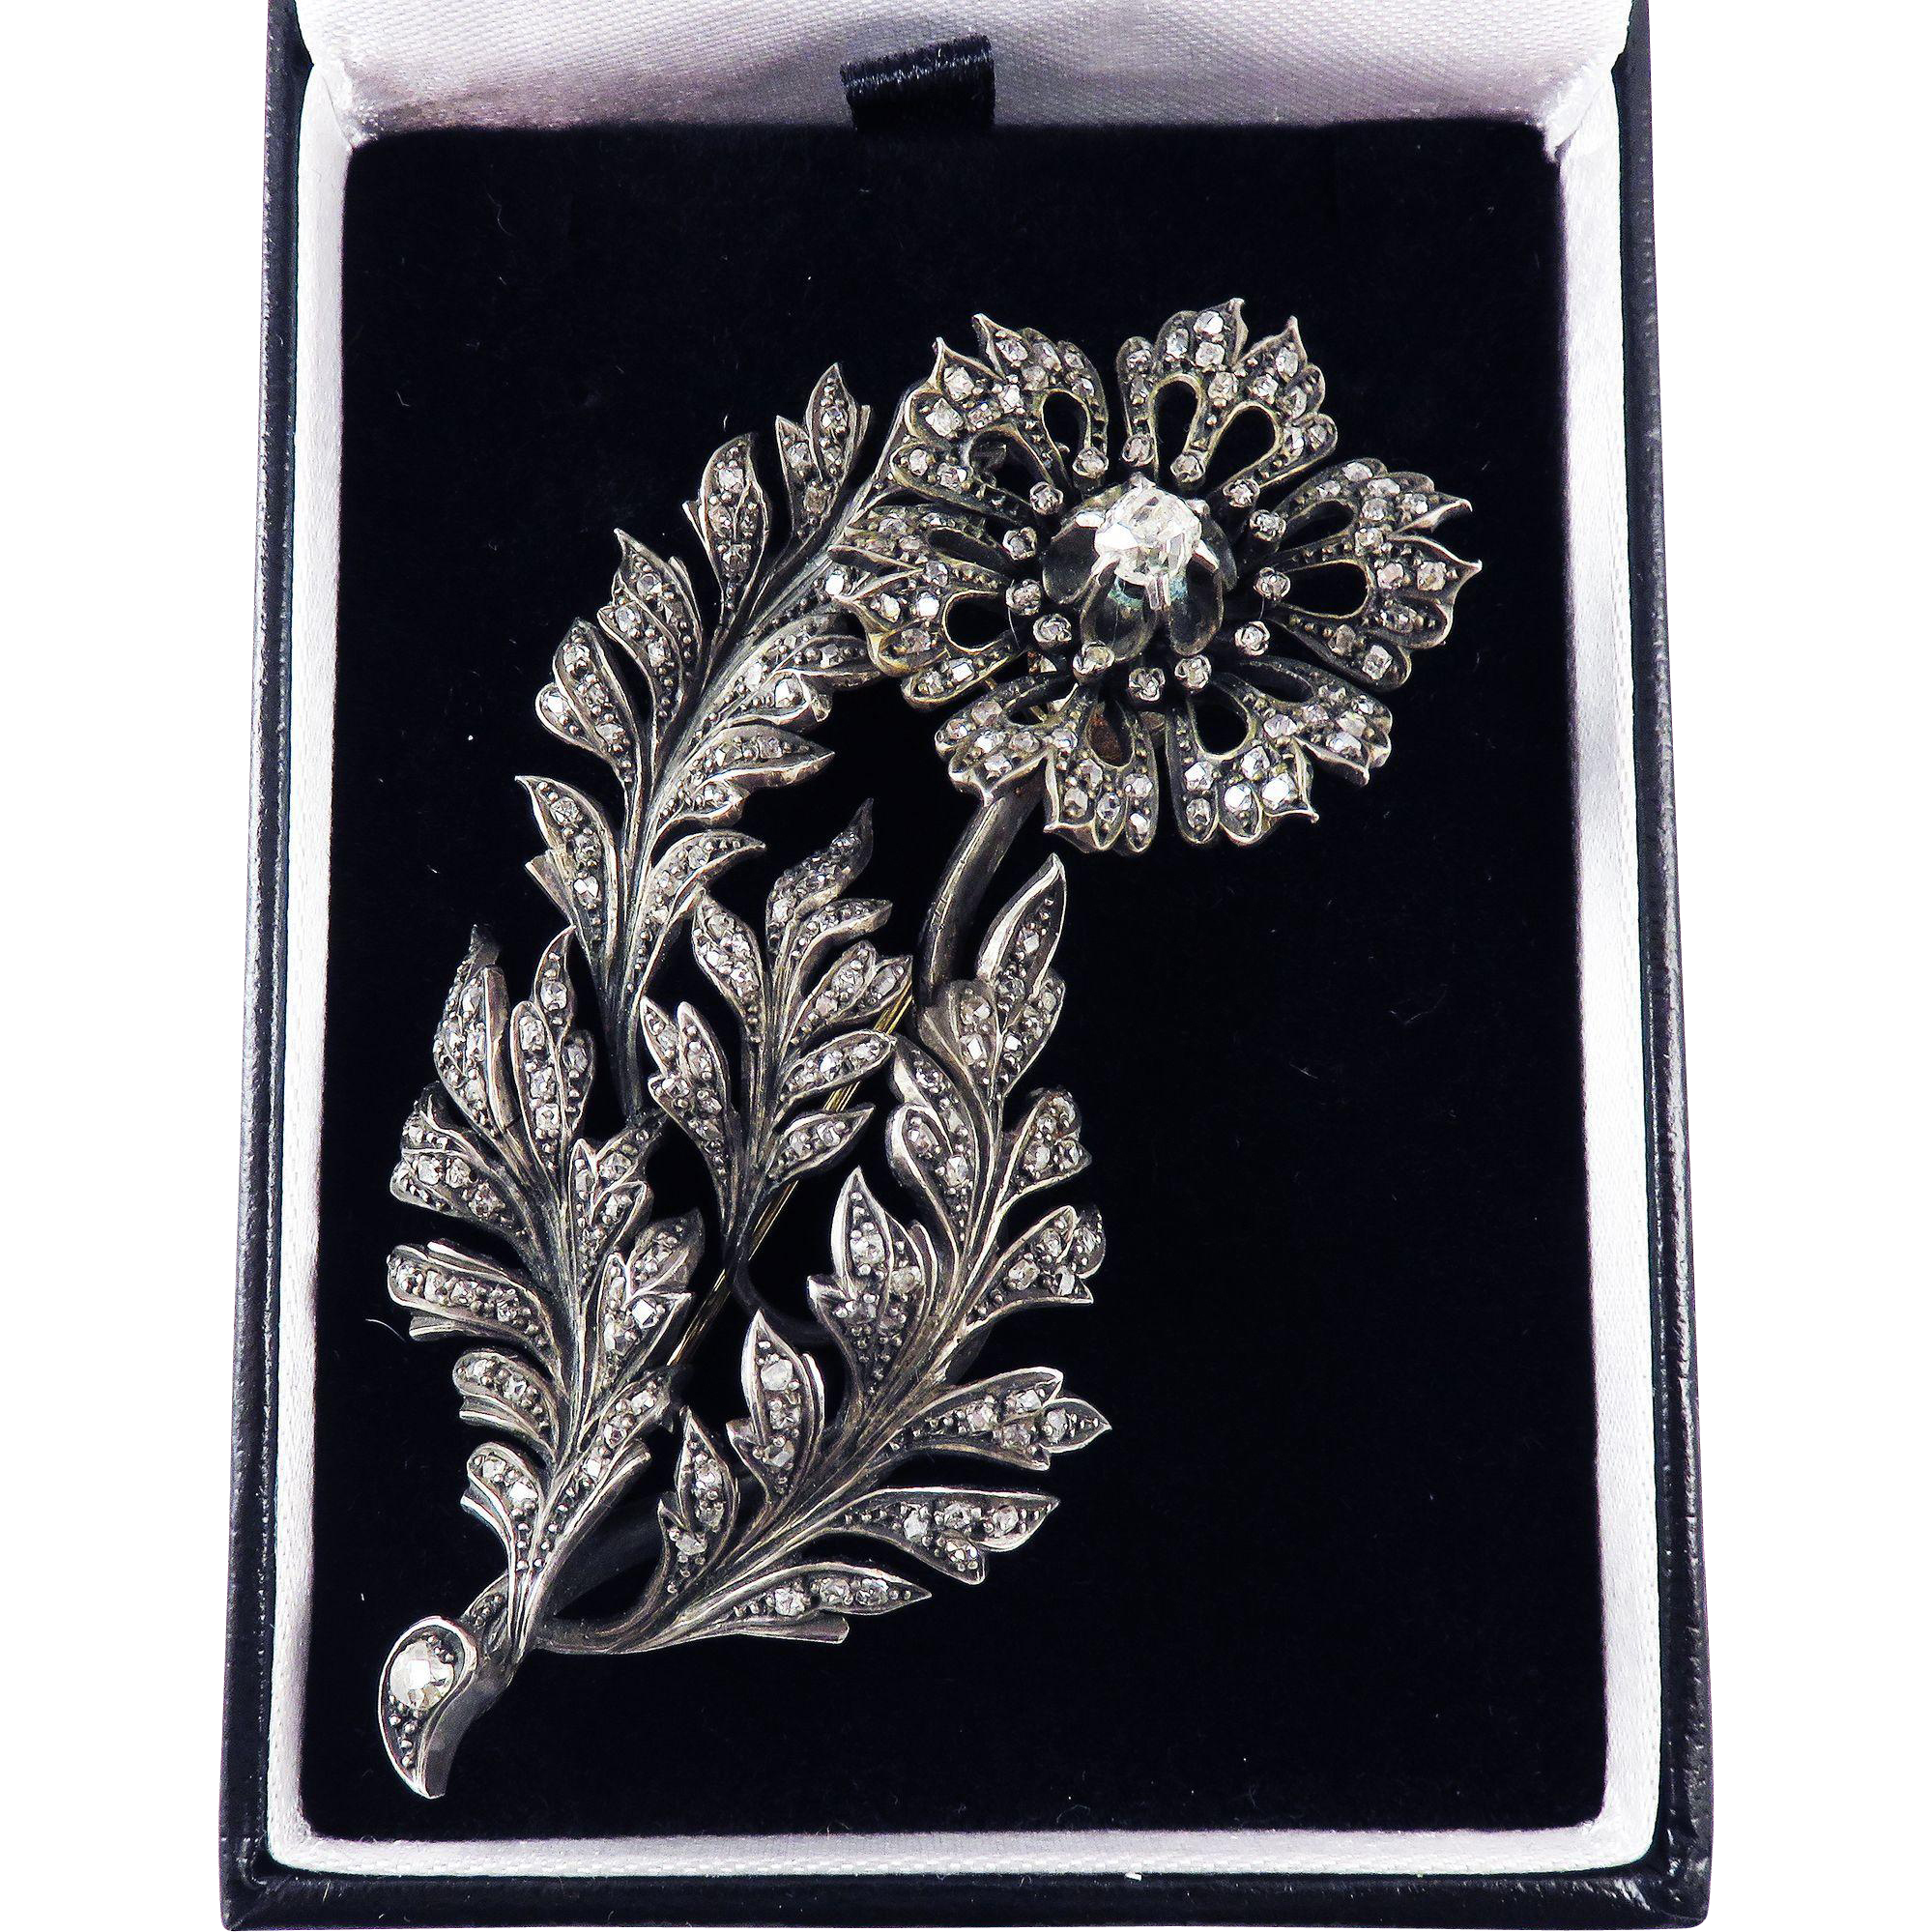 ULTIMATE 3.28 Ct. TW Victorian Old Mine-Cut Diamond Tremblant Floral Spray Brooch, c.1880!